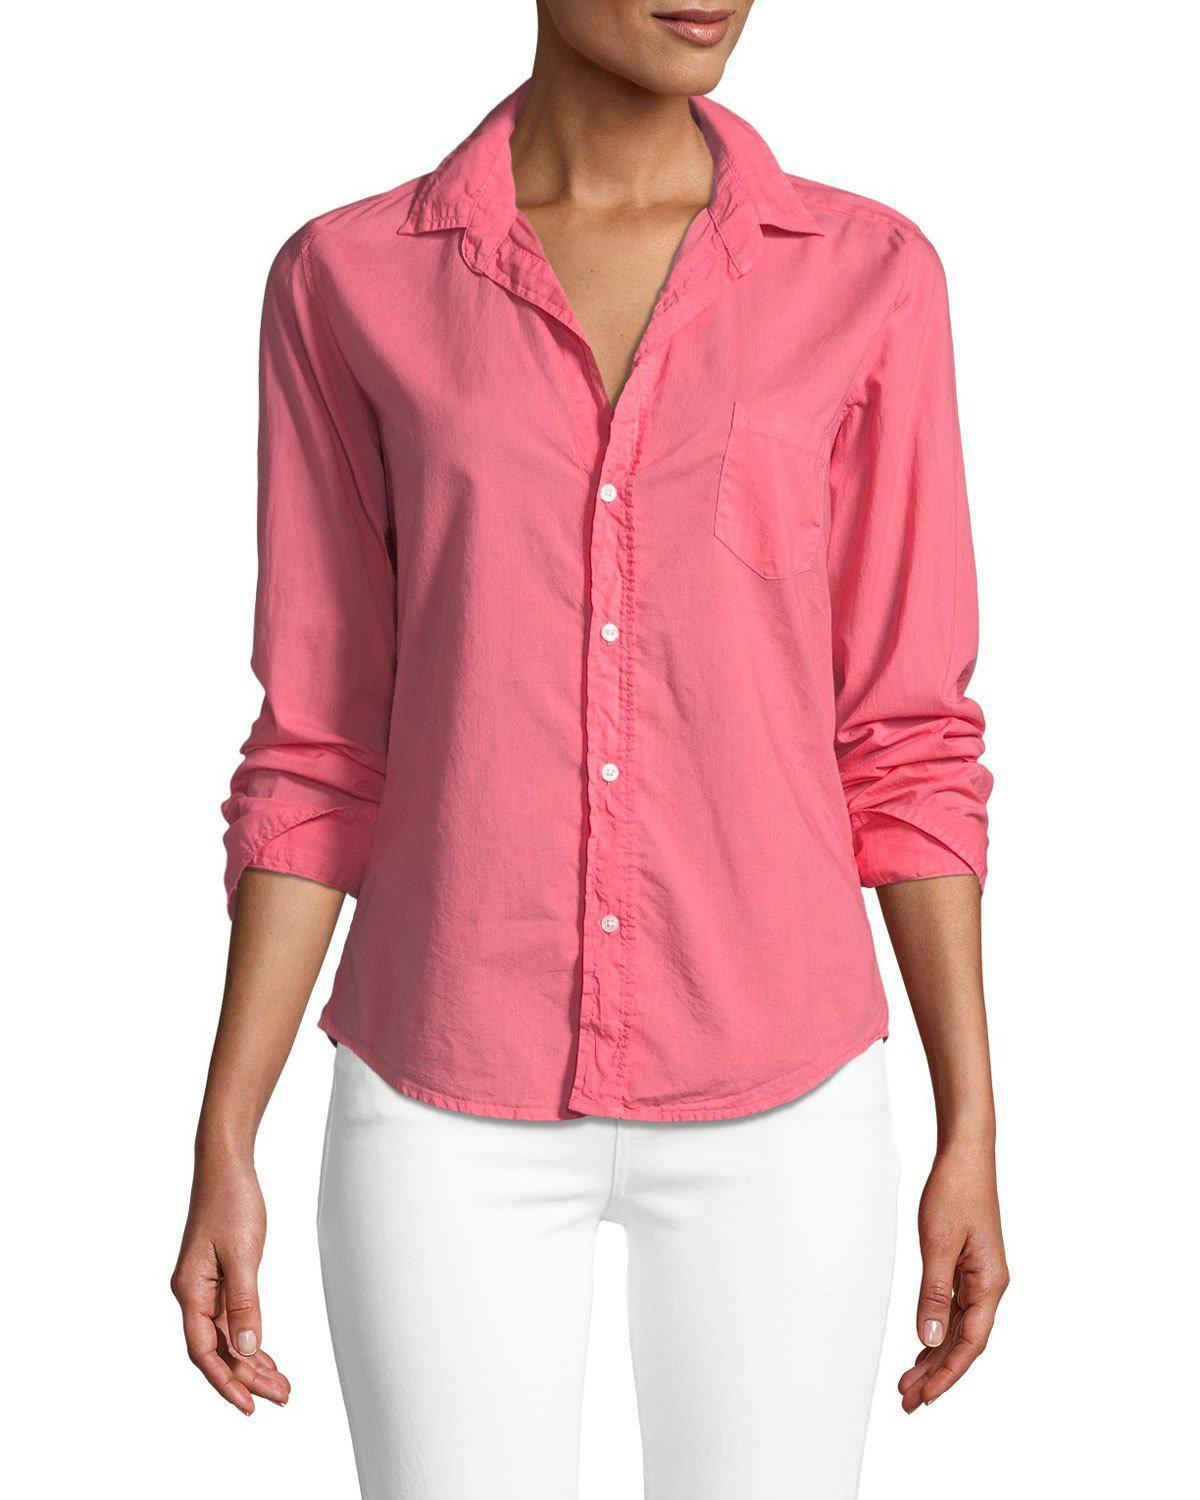 c10530df Lyst - Frank & Eileen Barry Long-sleeve Button-down Top in Pink